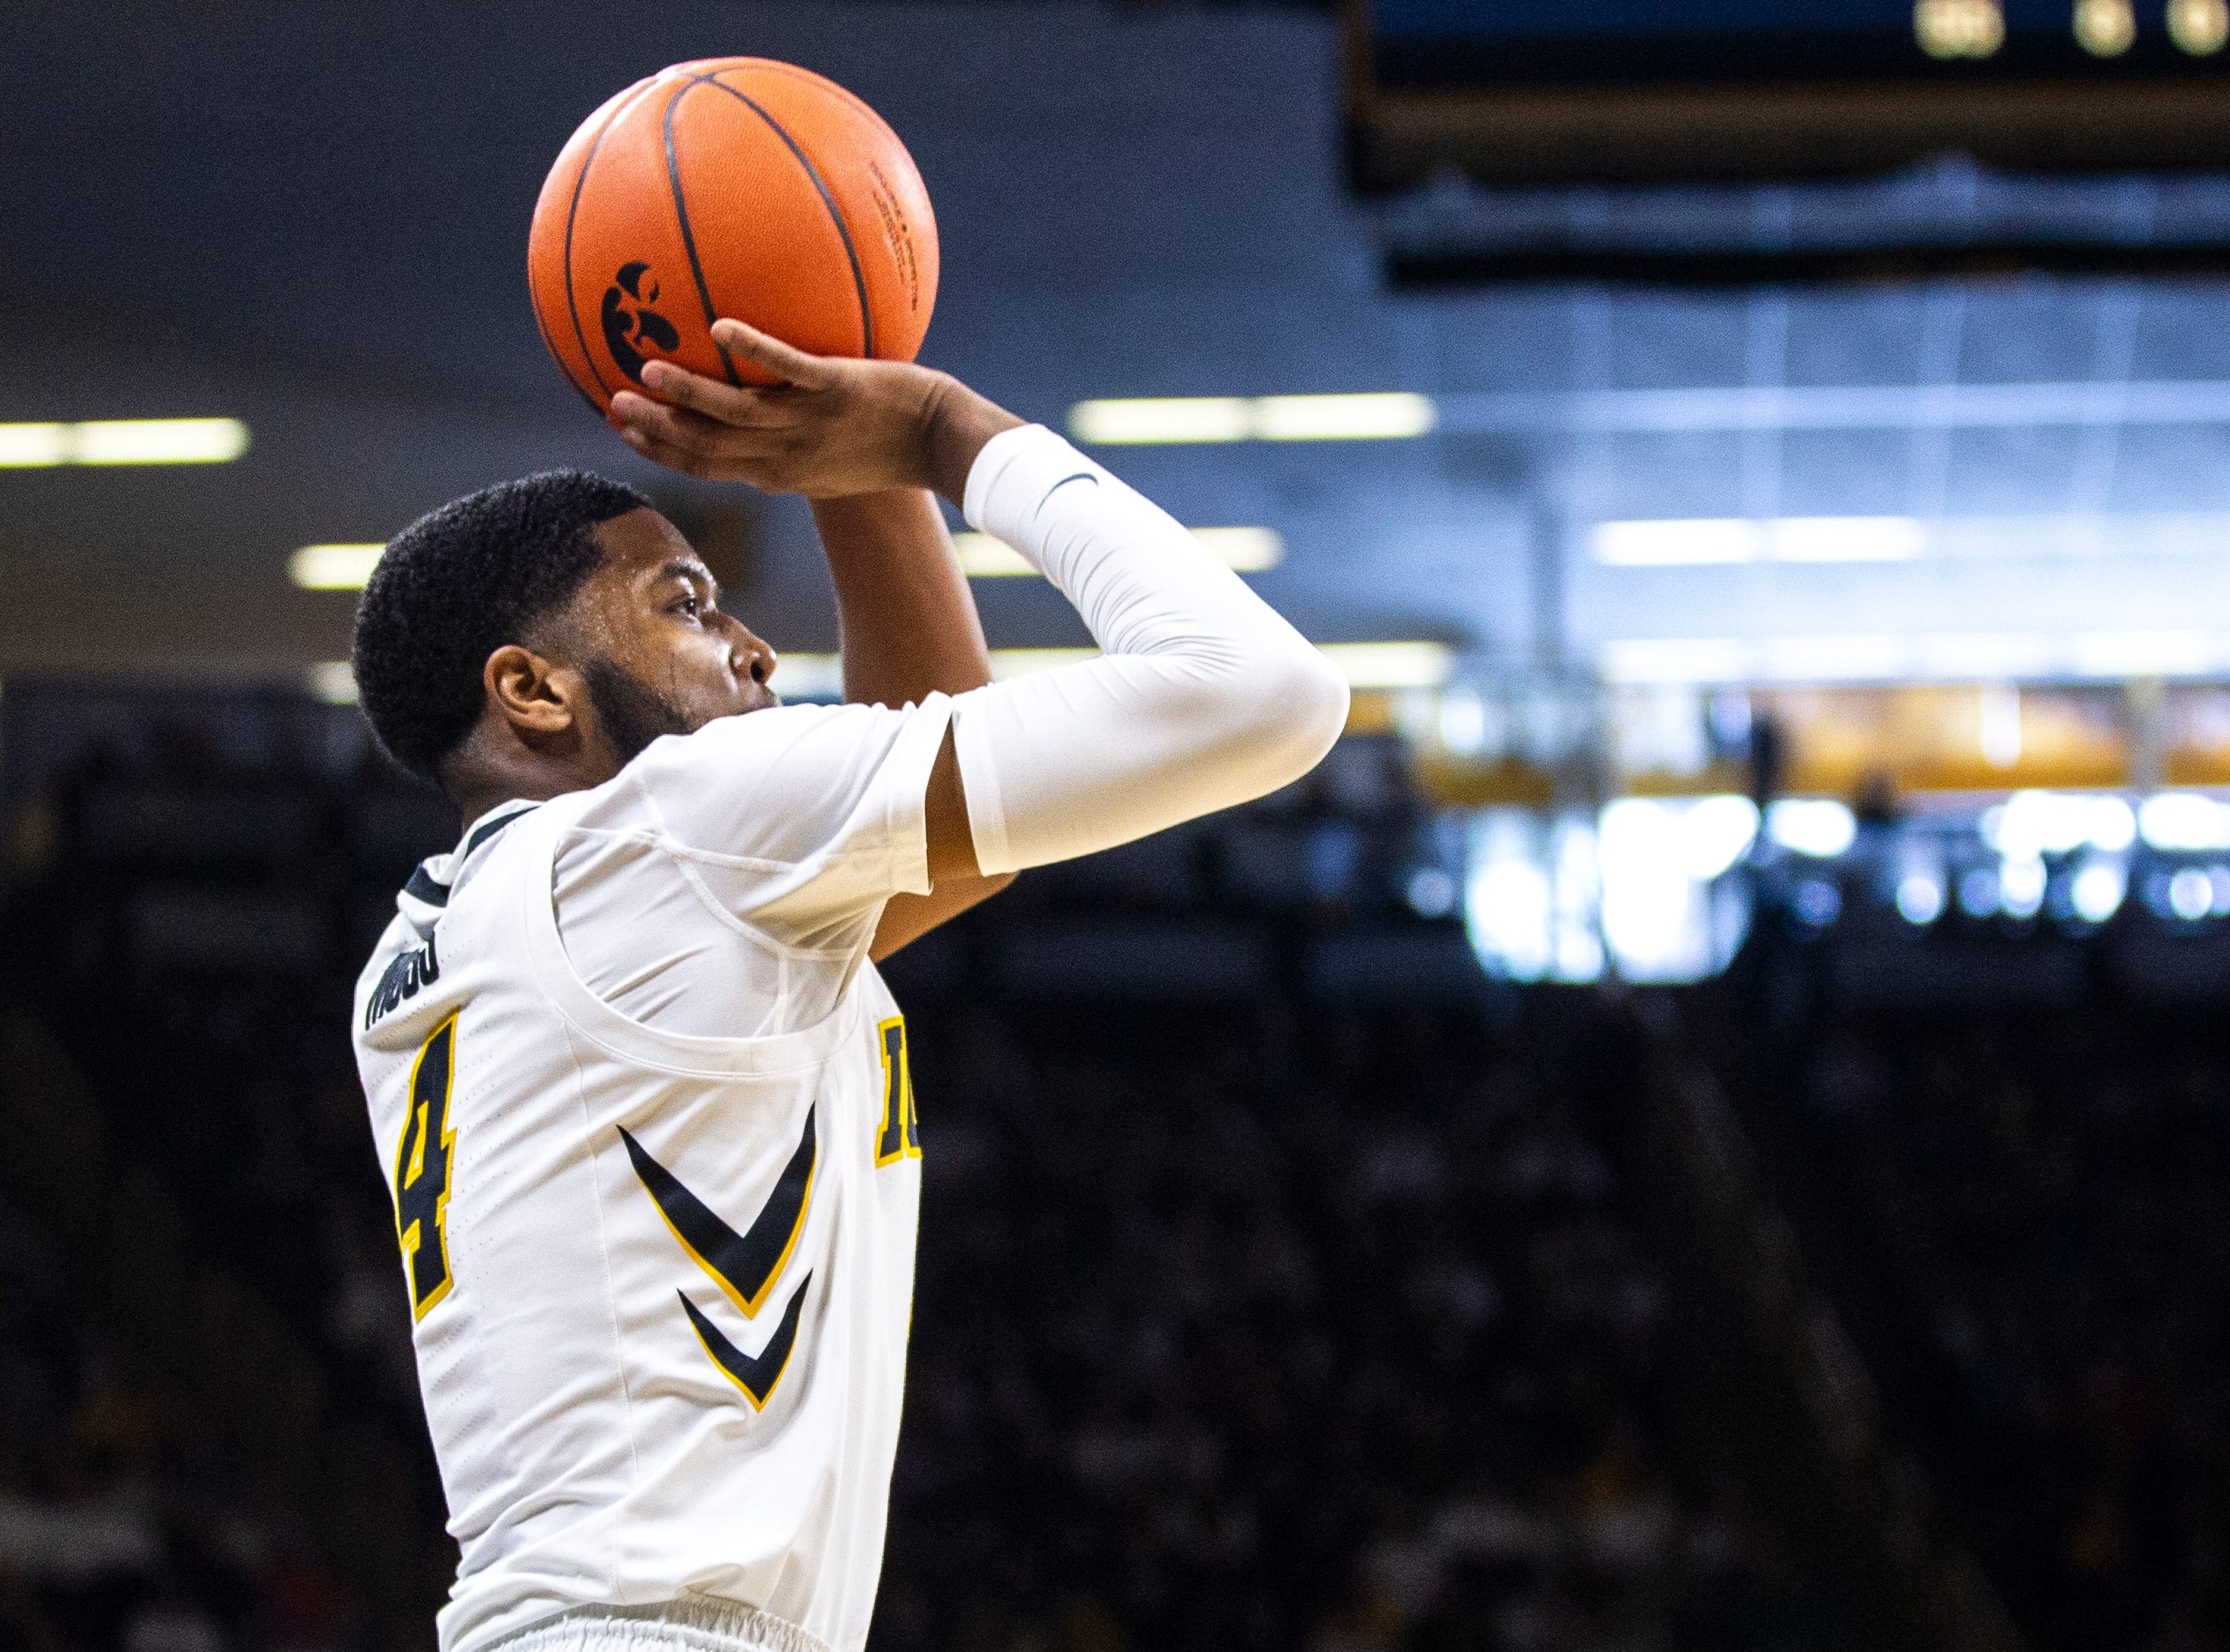 Iowa guard Isaiah Moss (4) makes a 3-point basket at the end of the first half during a NCAA Big Ten Conference men's basketball game on Sunday, Jan. 20, 2019, at Carver-Hawkeye Arena in Iowa City, Iowa.